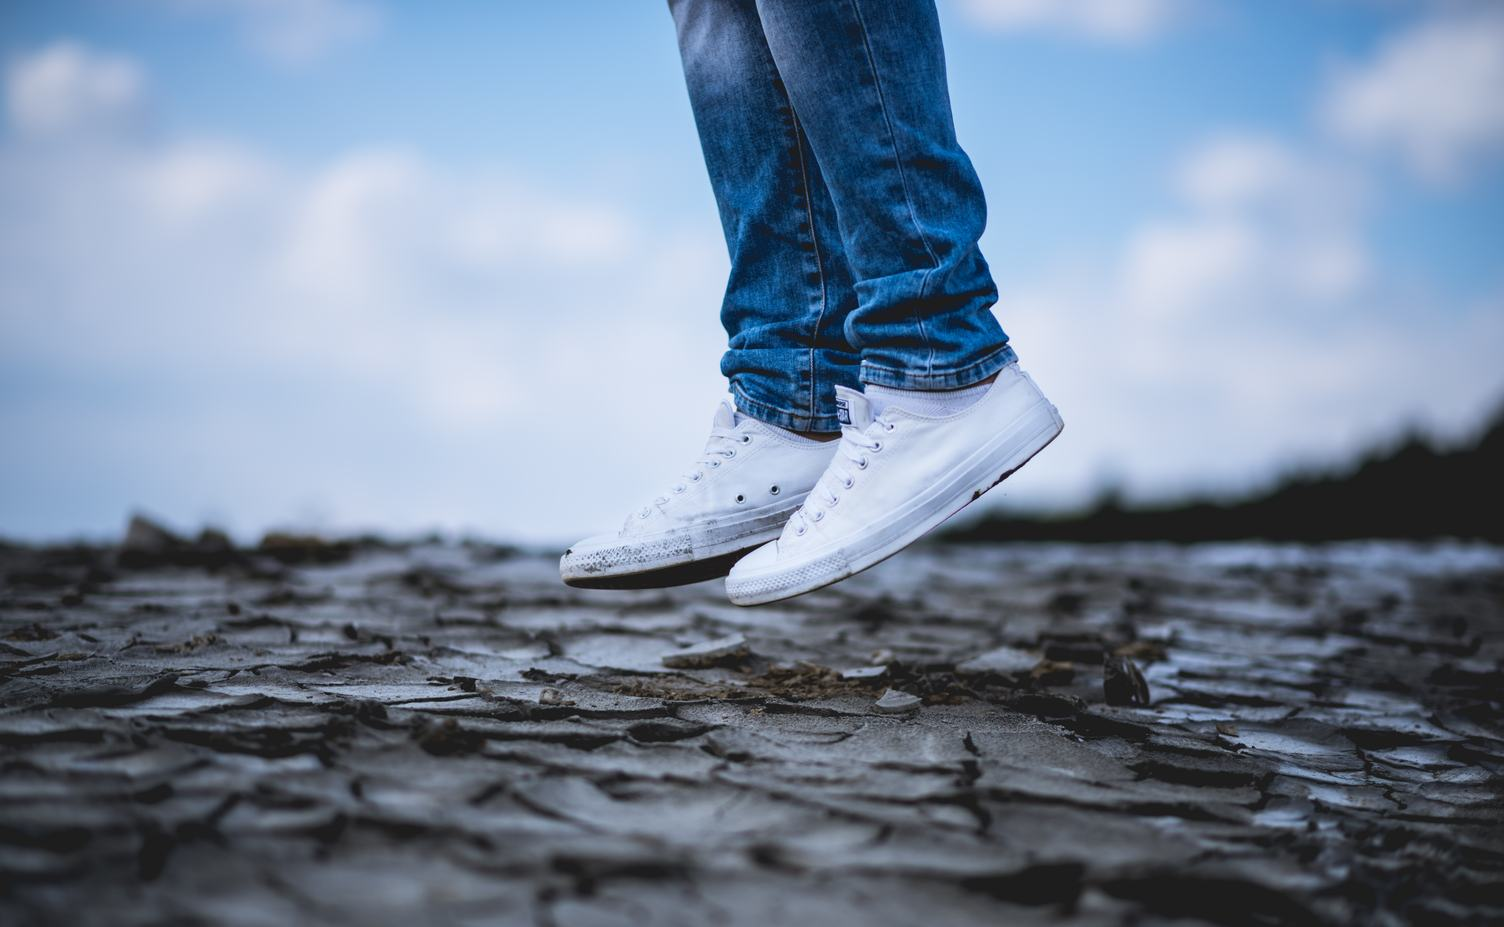 Person in White Sneakers Jumping